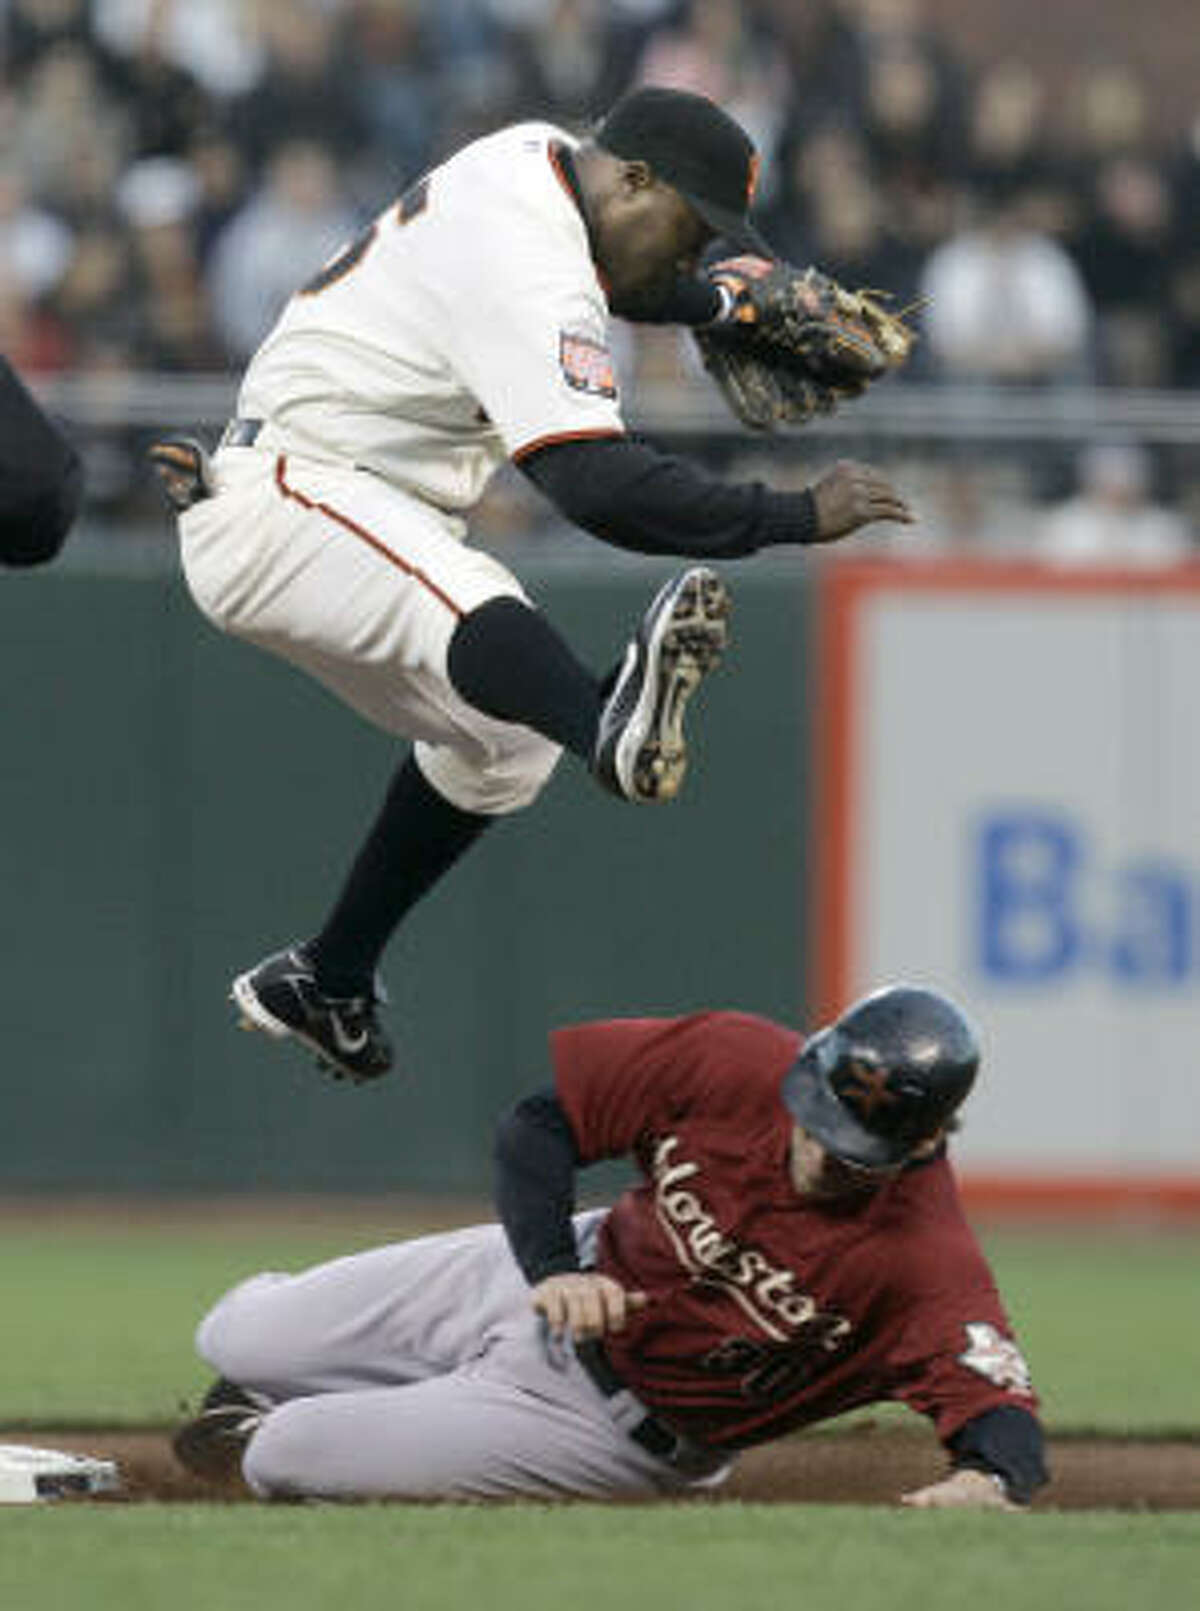 San Francisco second baseman Ray Durham avoids a sliding Luke Scott to turns a double play on Hunter Pence's ground ball to shortstop in the fourth inning.